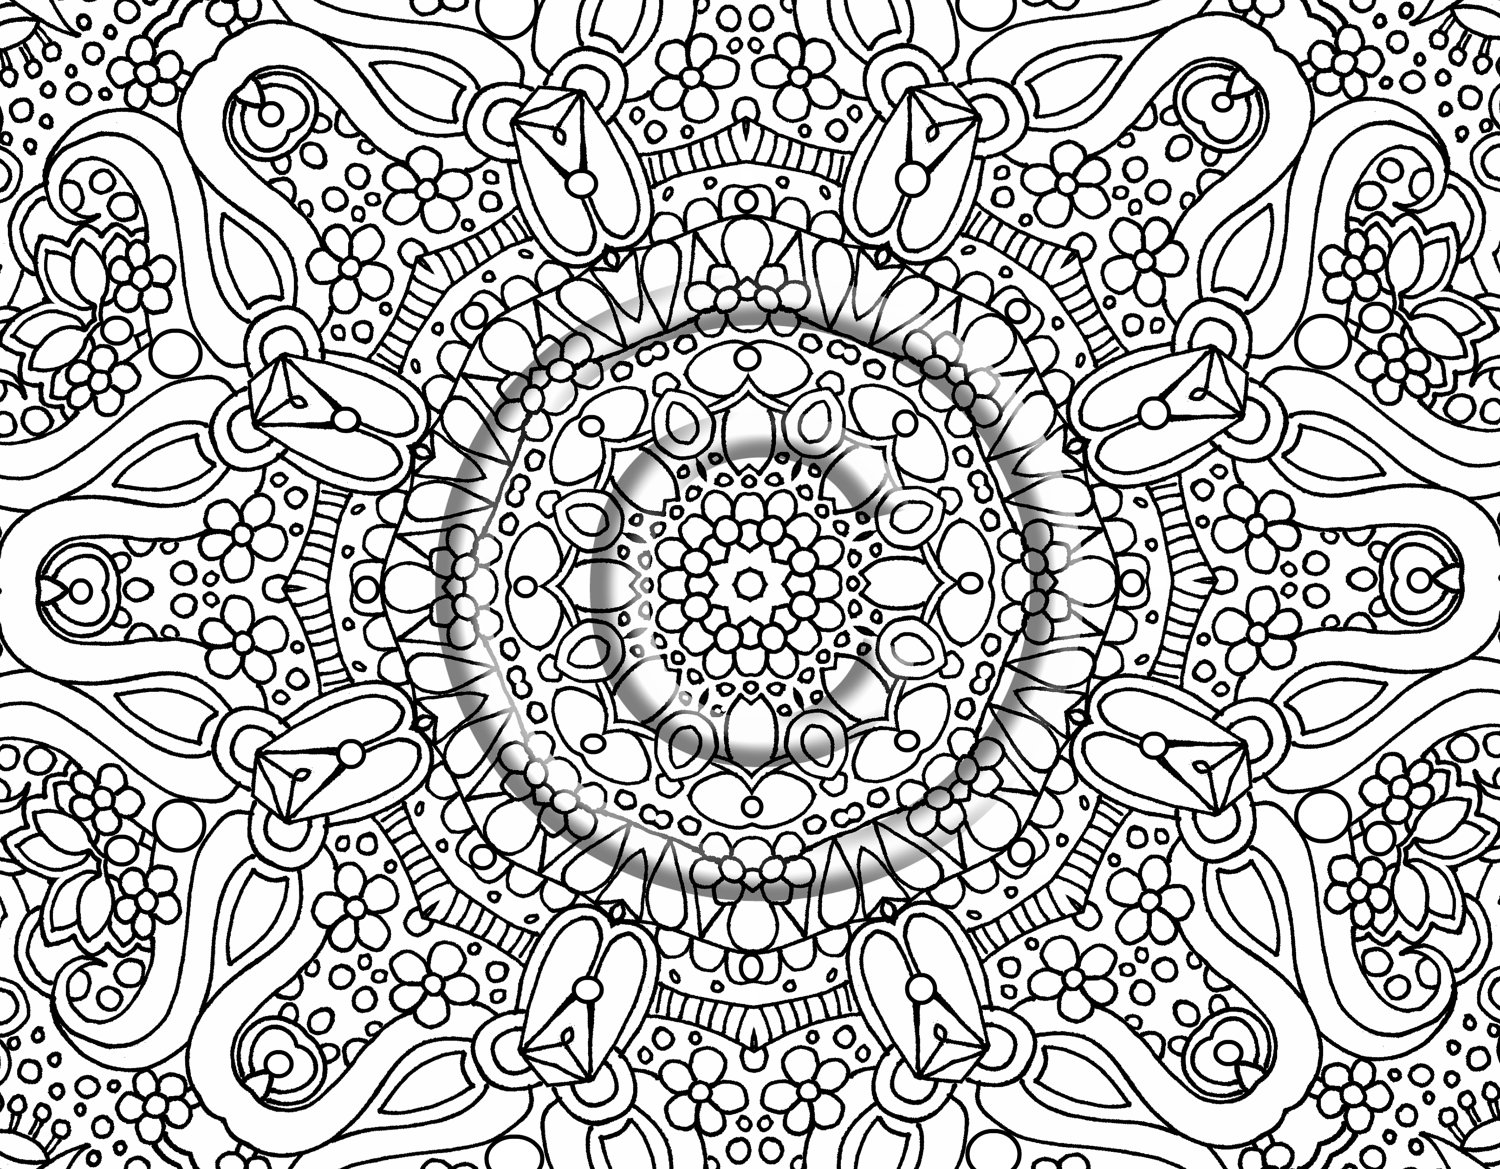 1500x1169 Adult Coloring Pages To Color Online For Free